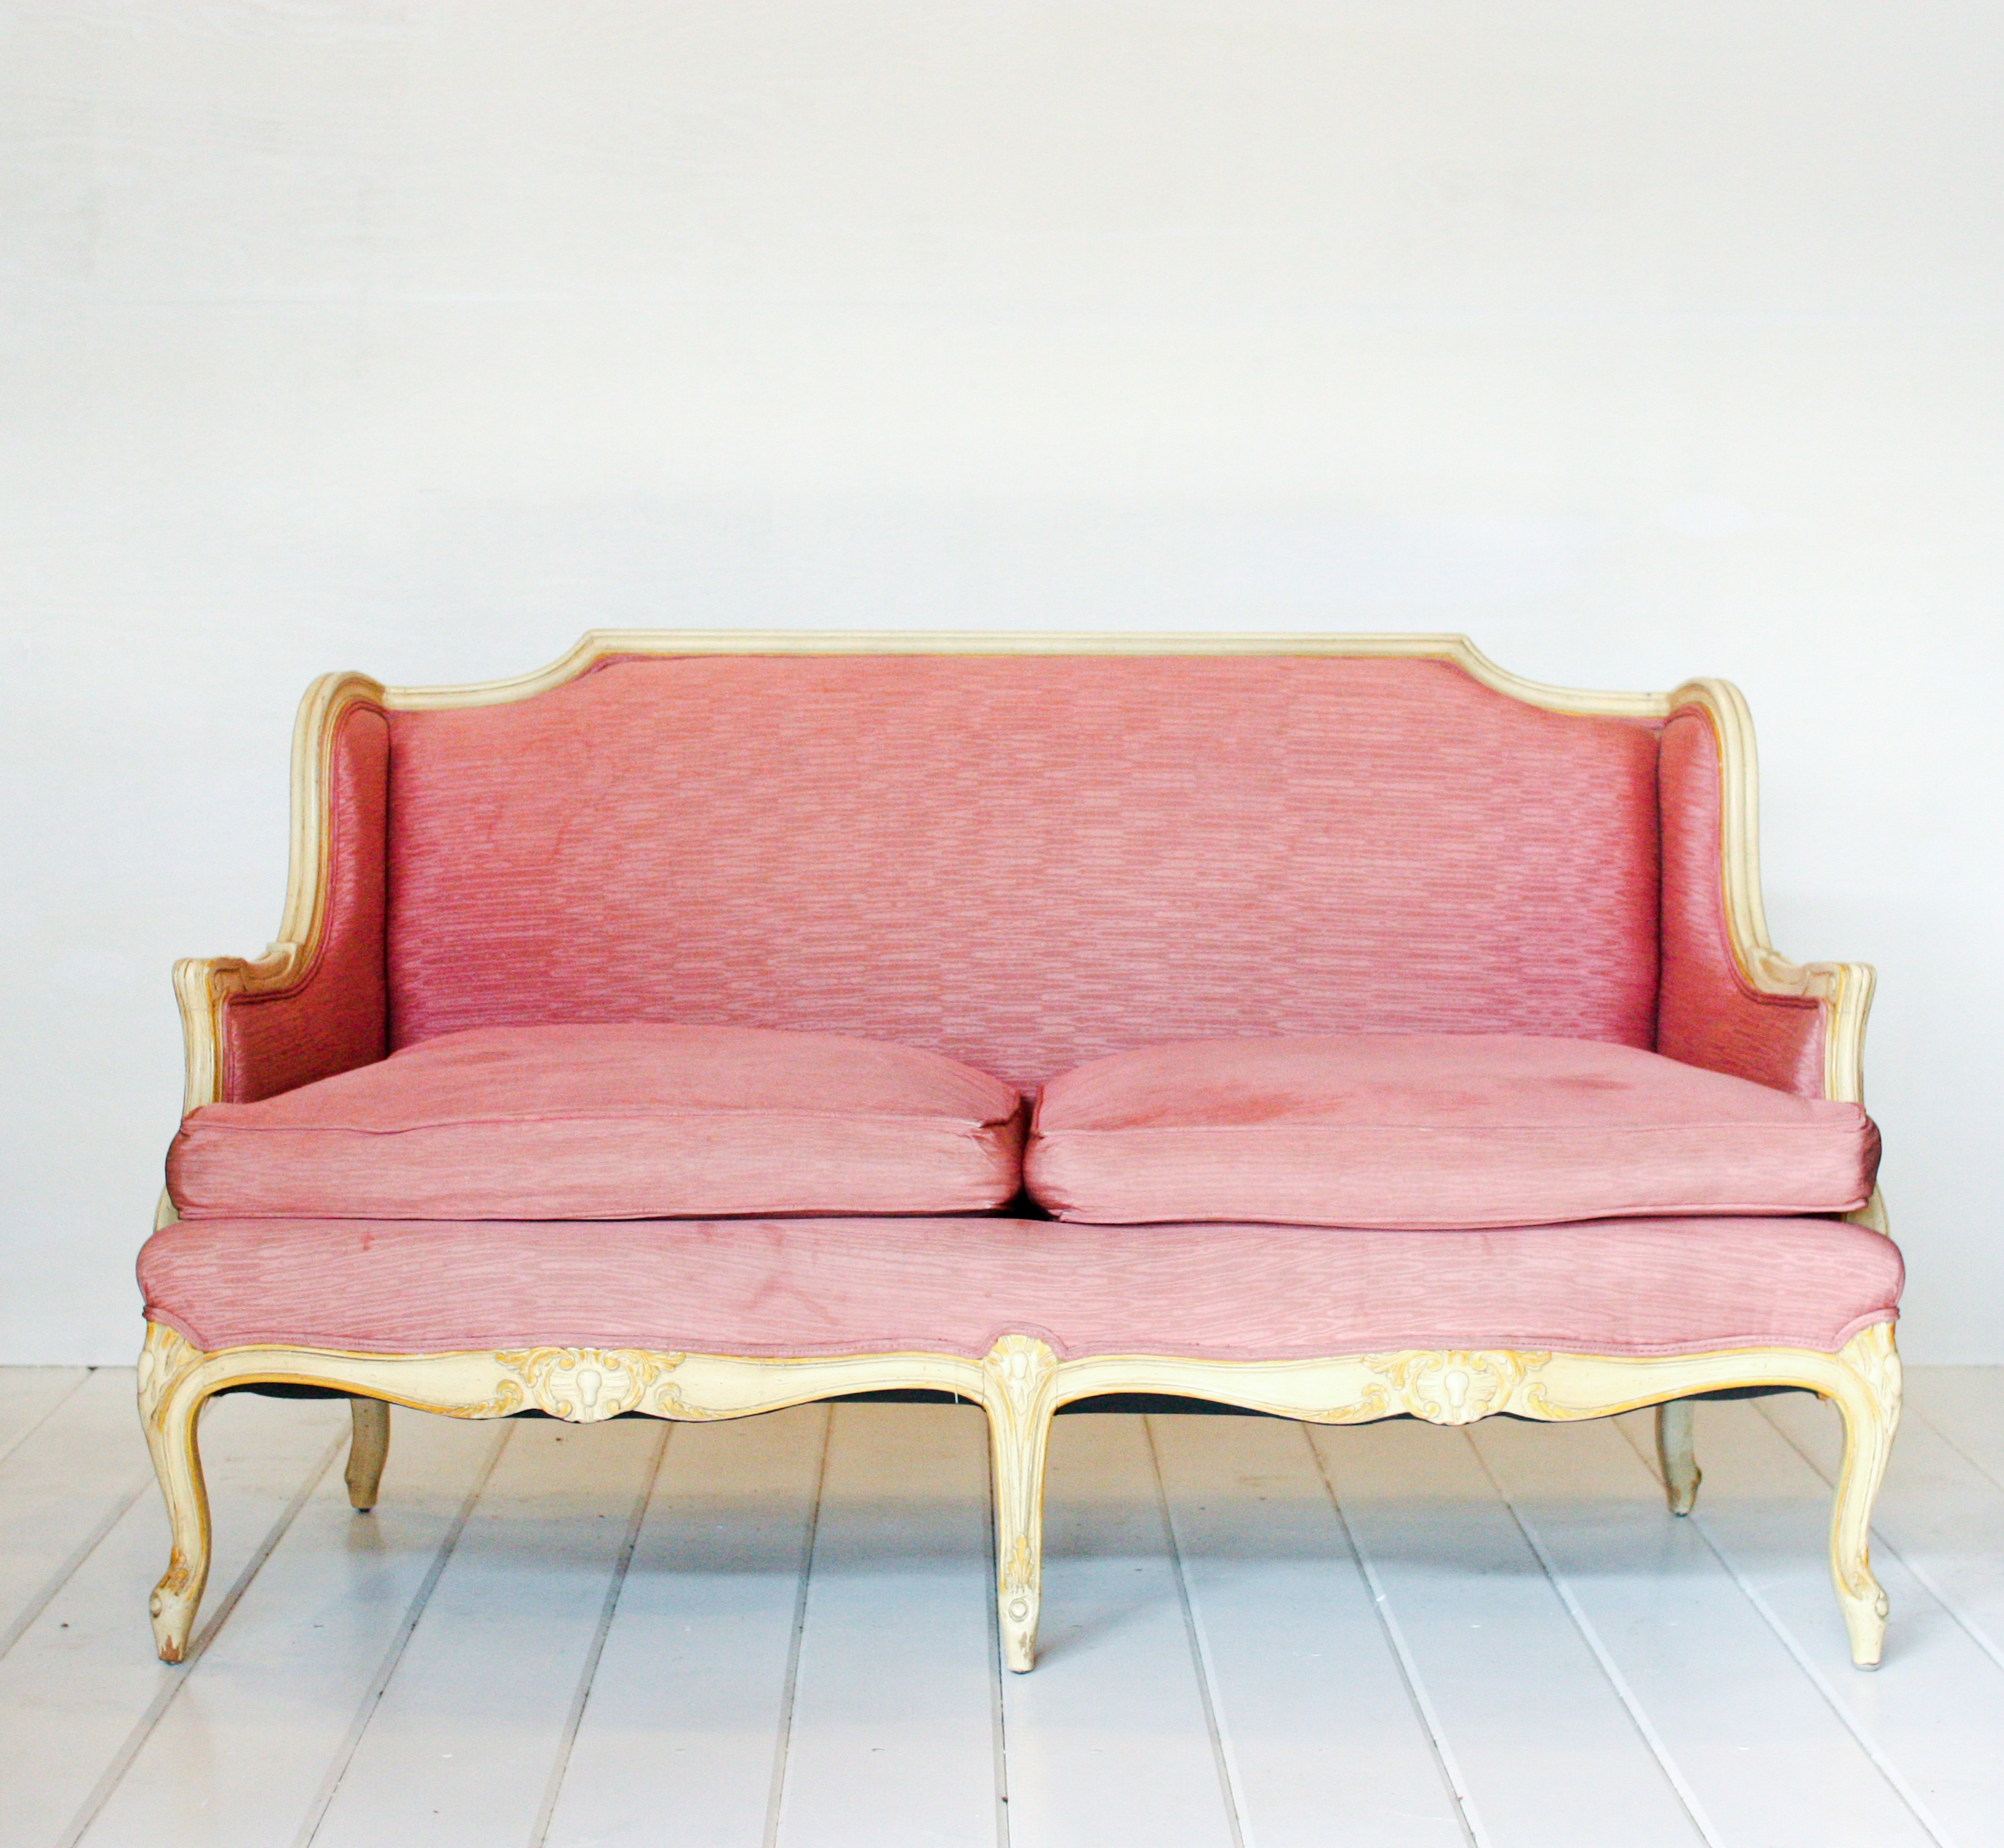 Pink settee vintage rentals in connecticut Furniture in rental home